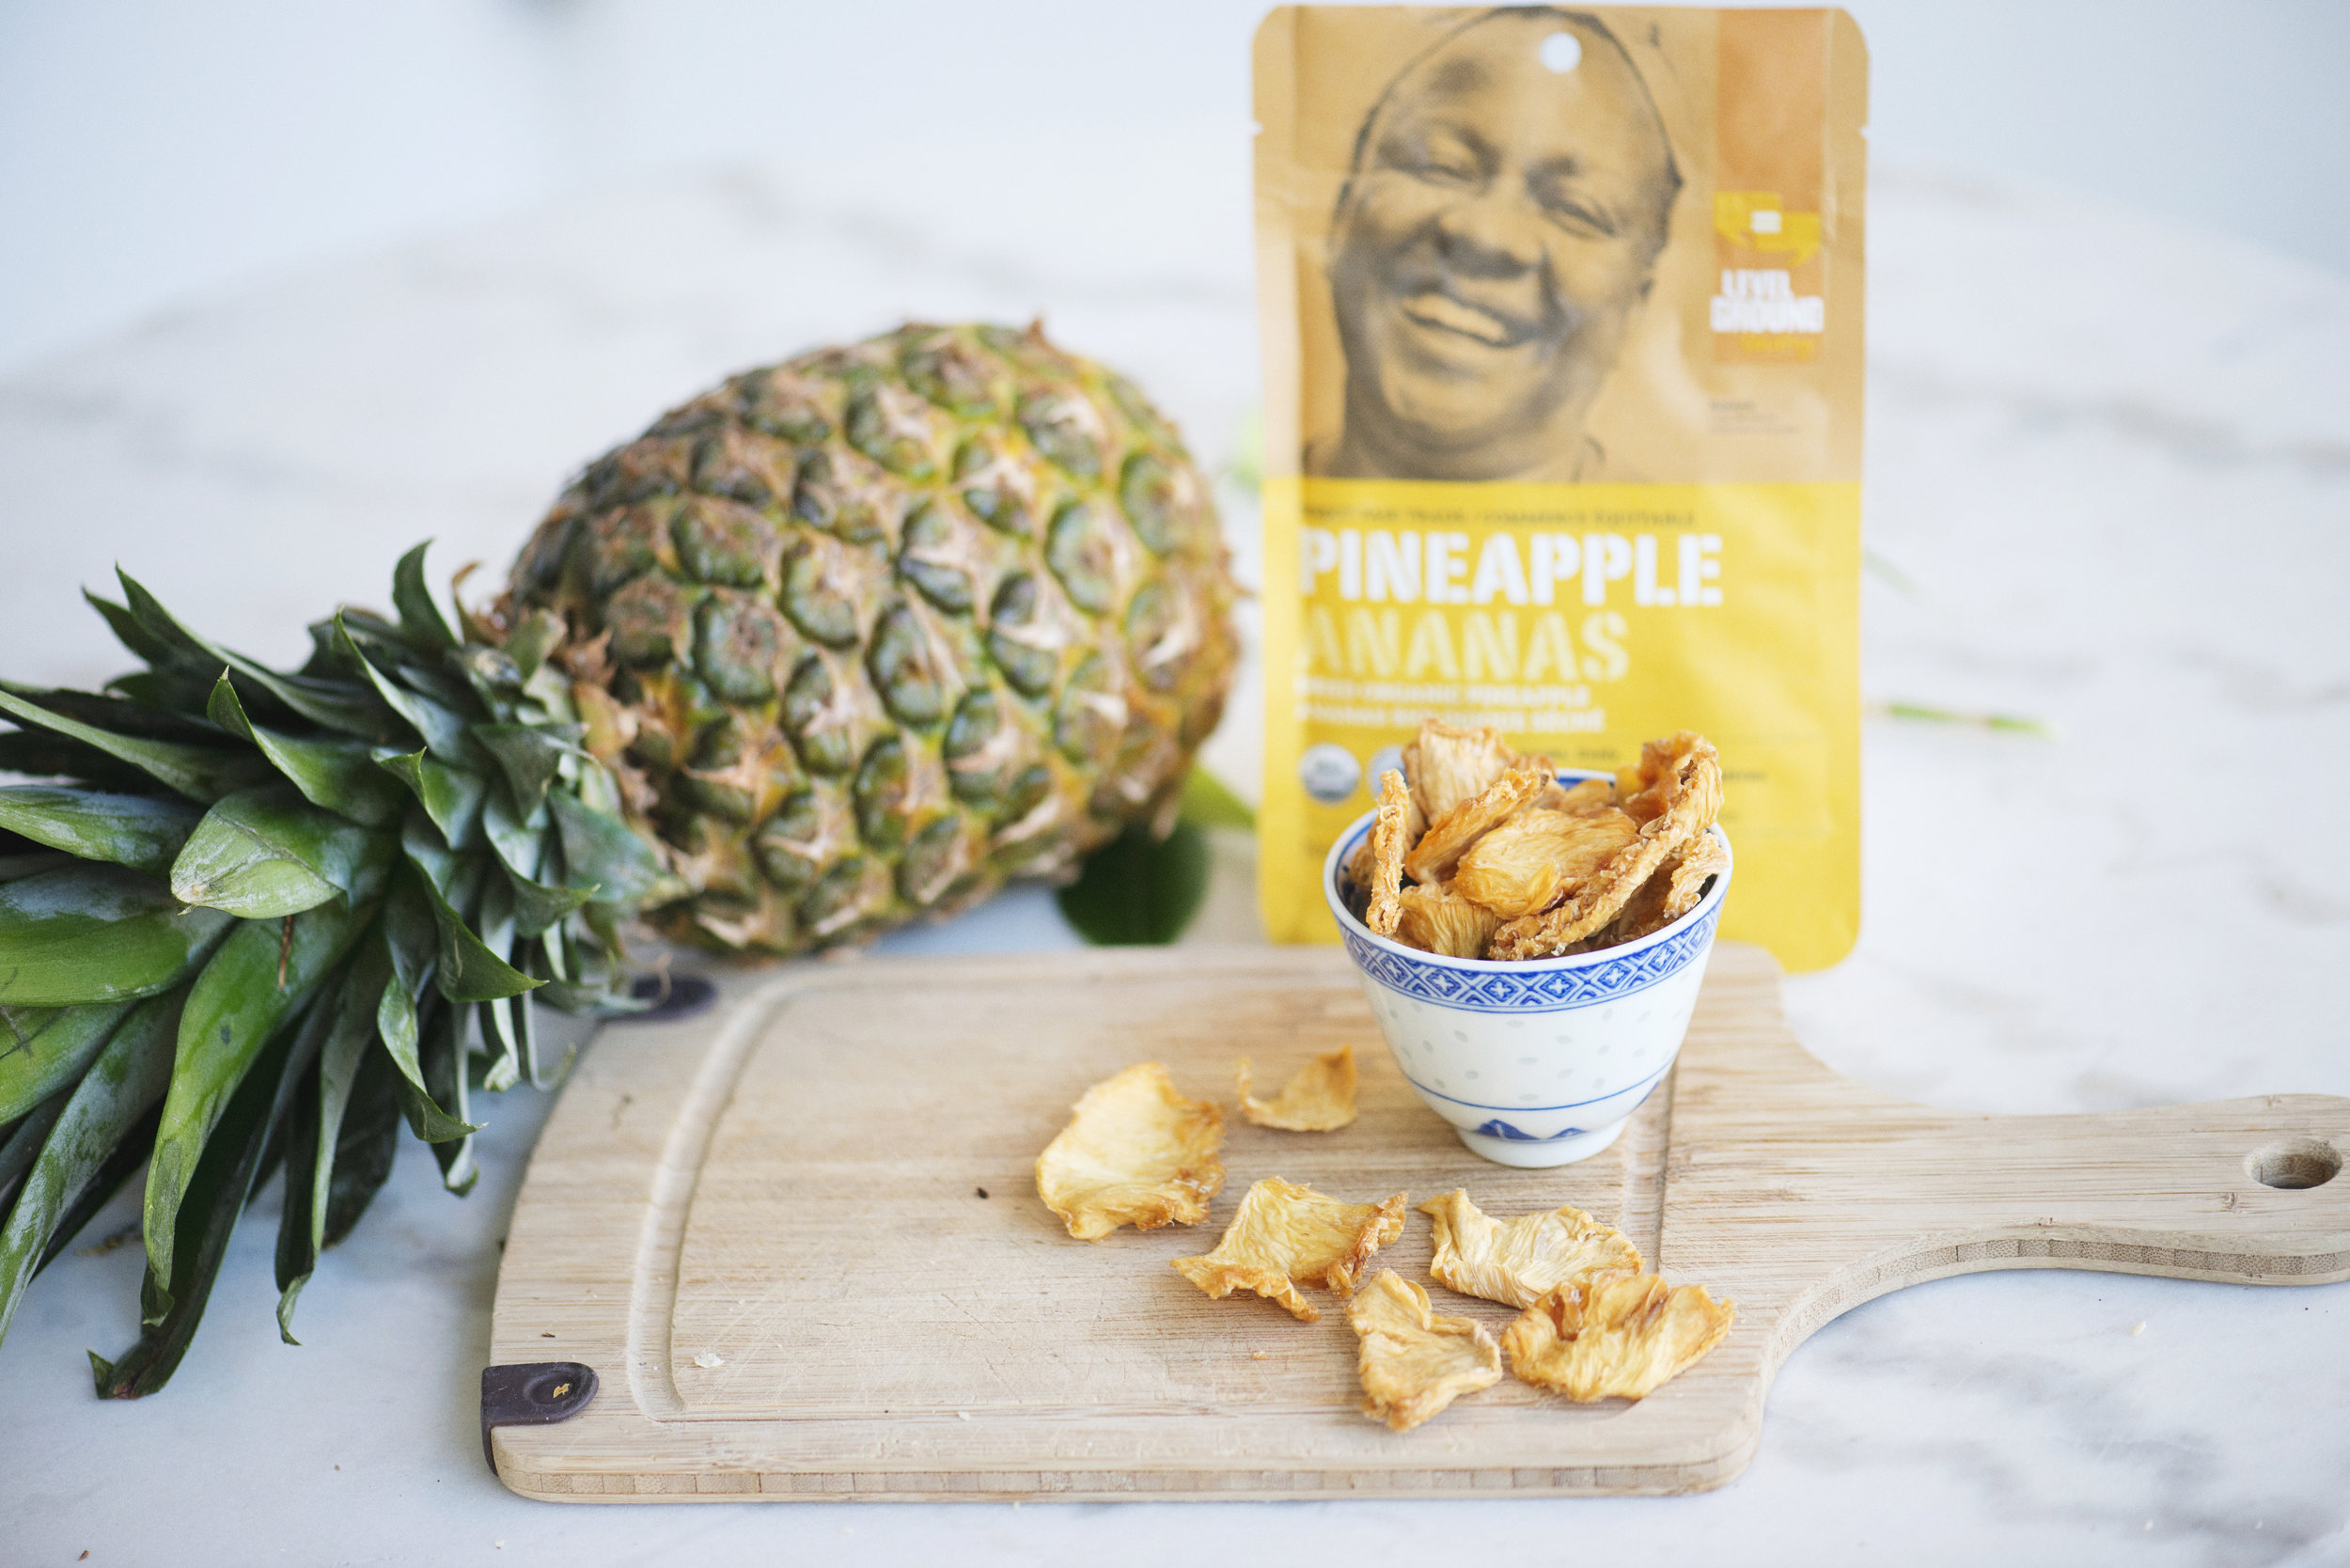 The finished product. Our pineapple package features the face of Susanna Balanta.